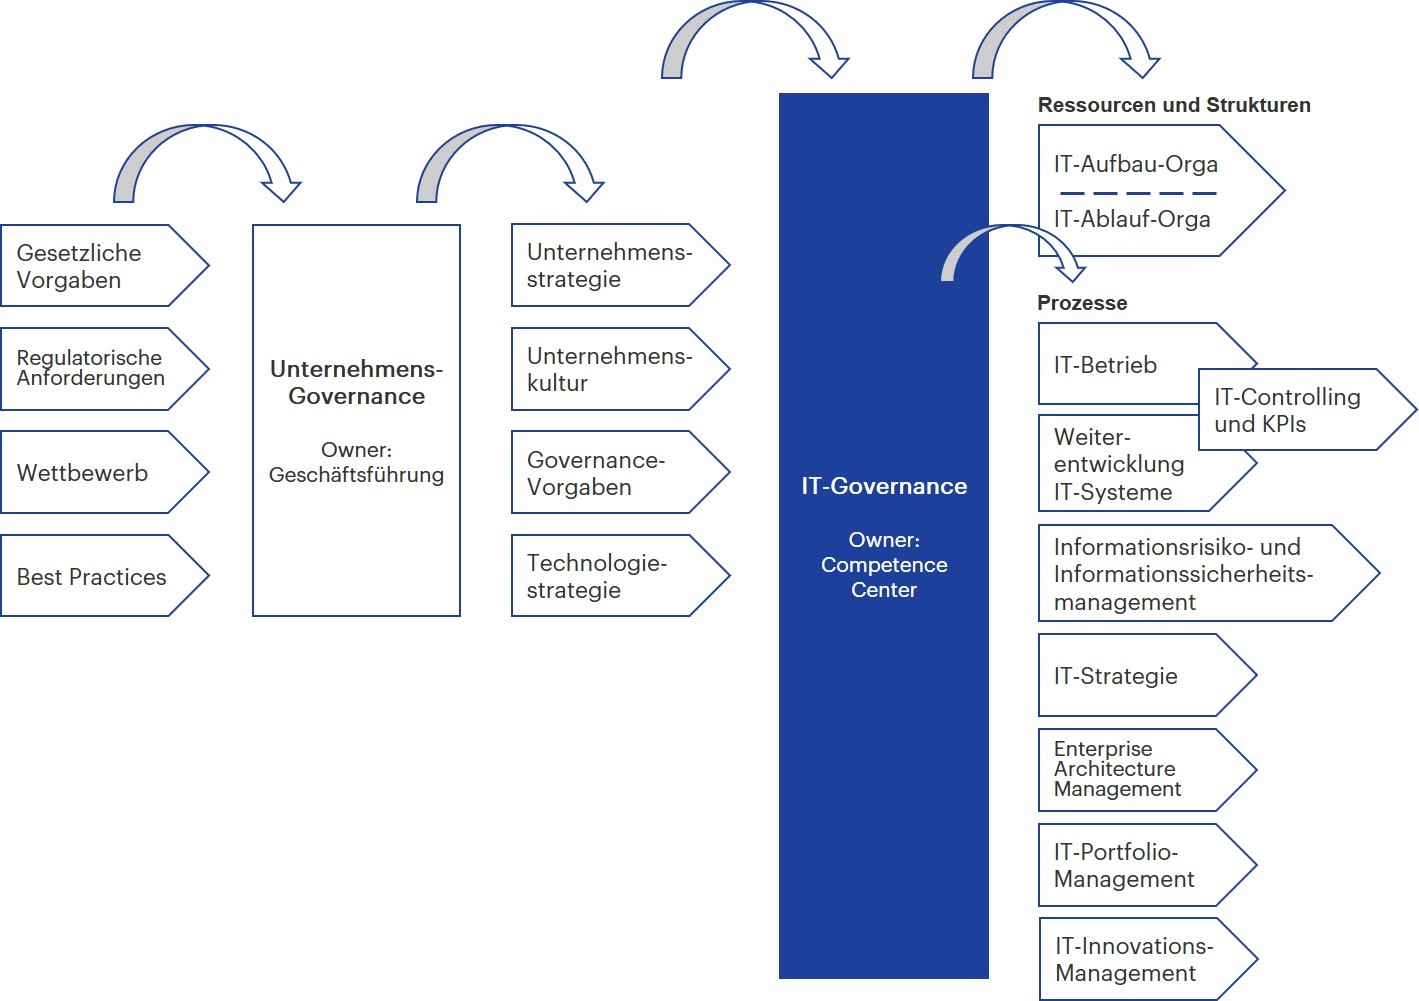 IT-Governance vs. Unternehmens-Governance